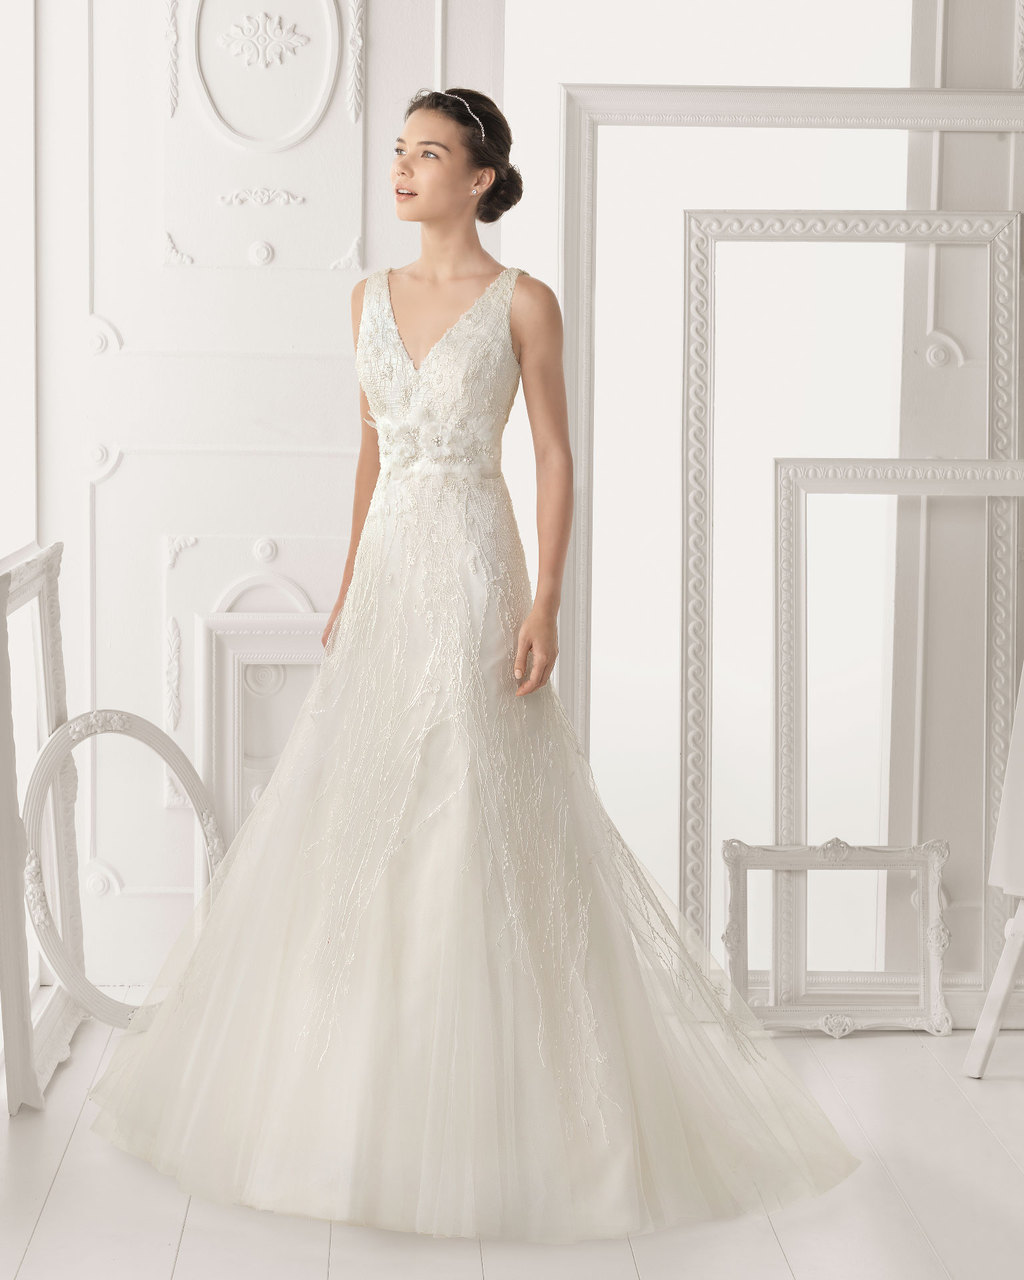 Aire Barcelona wedding dress 2014 Bridal Olimpia